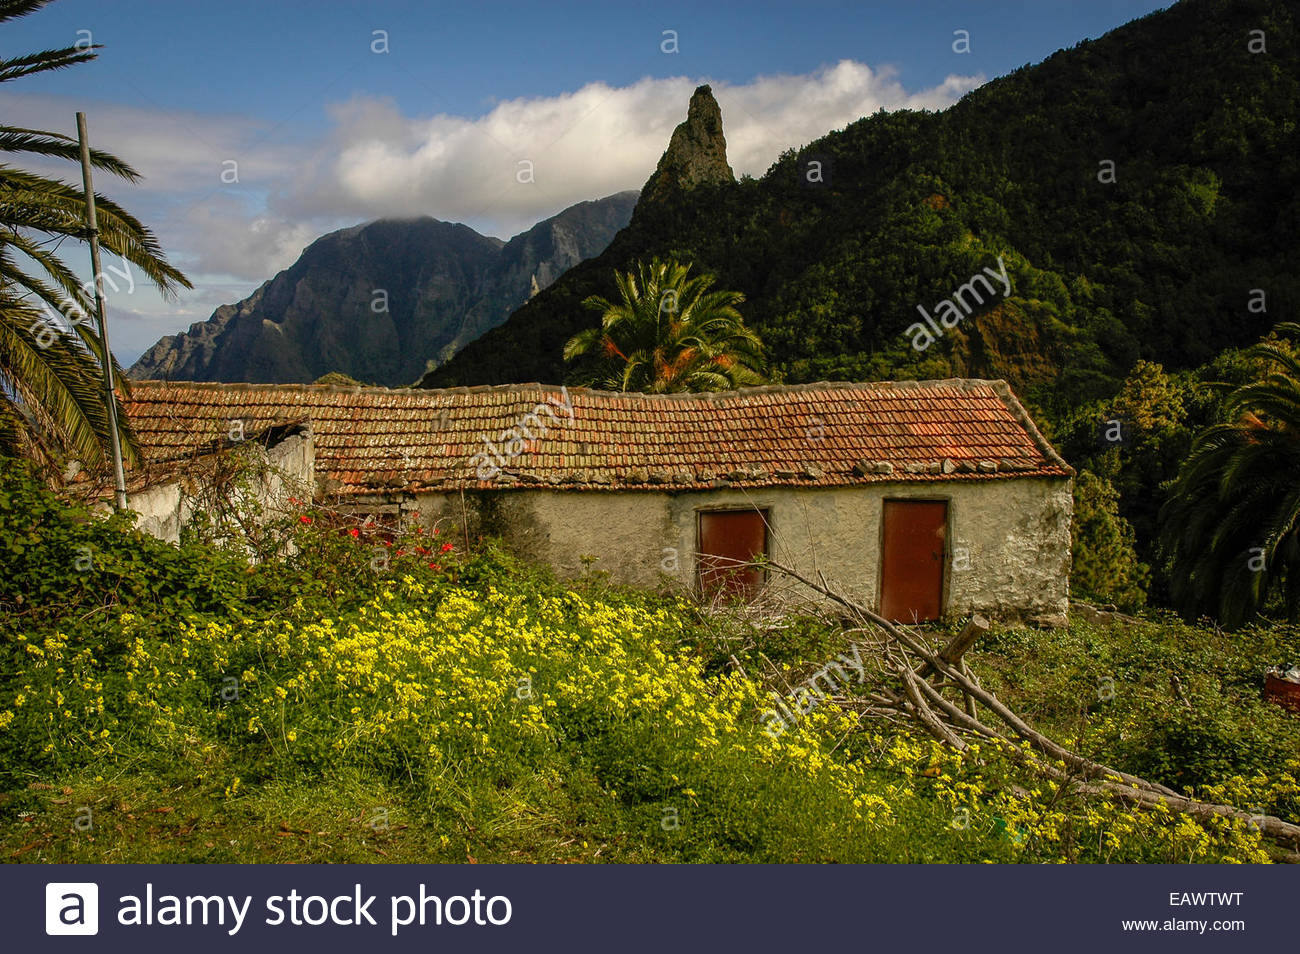 An old house and gardens on a rugged landscape near a volcanic plug ...